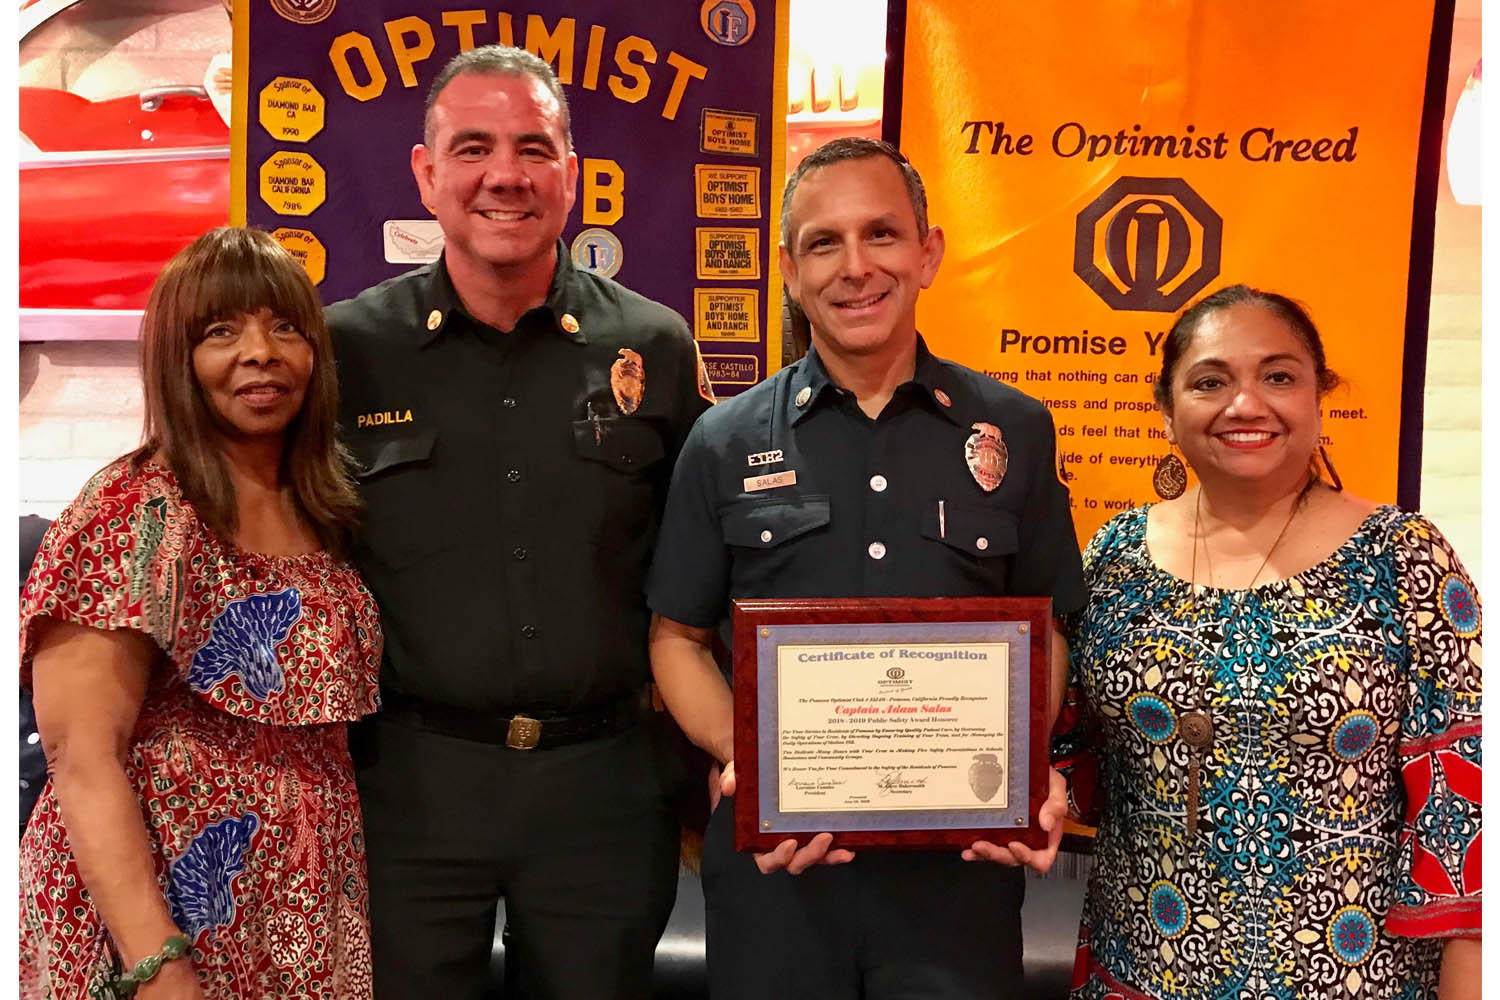 On Thursday, June 13, 2019, the Pomona Optimist Club held its Respect for Public Safety Dinner at Mr. D's Diner.  The annual event honors members of the Los Angeles County Fire Department and Pomona Police Department.